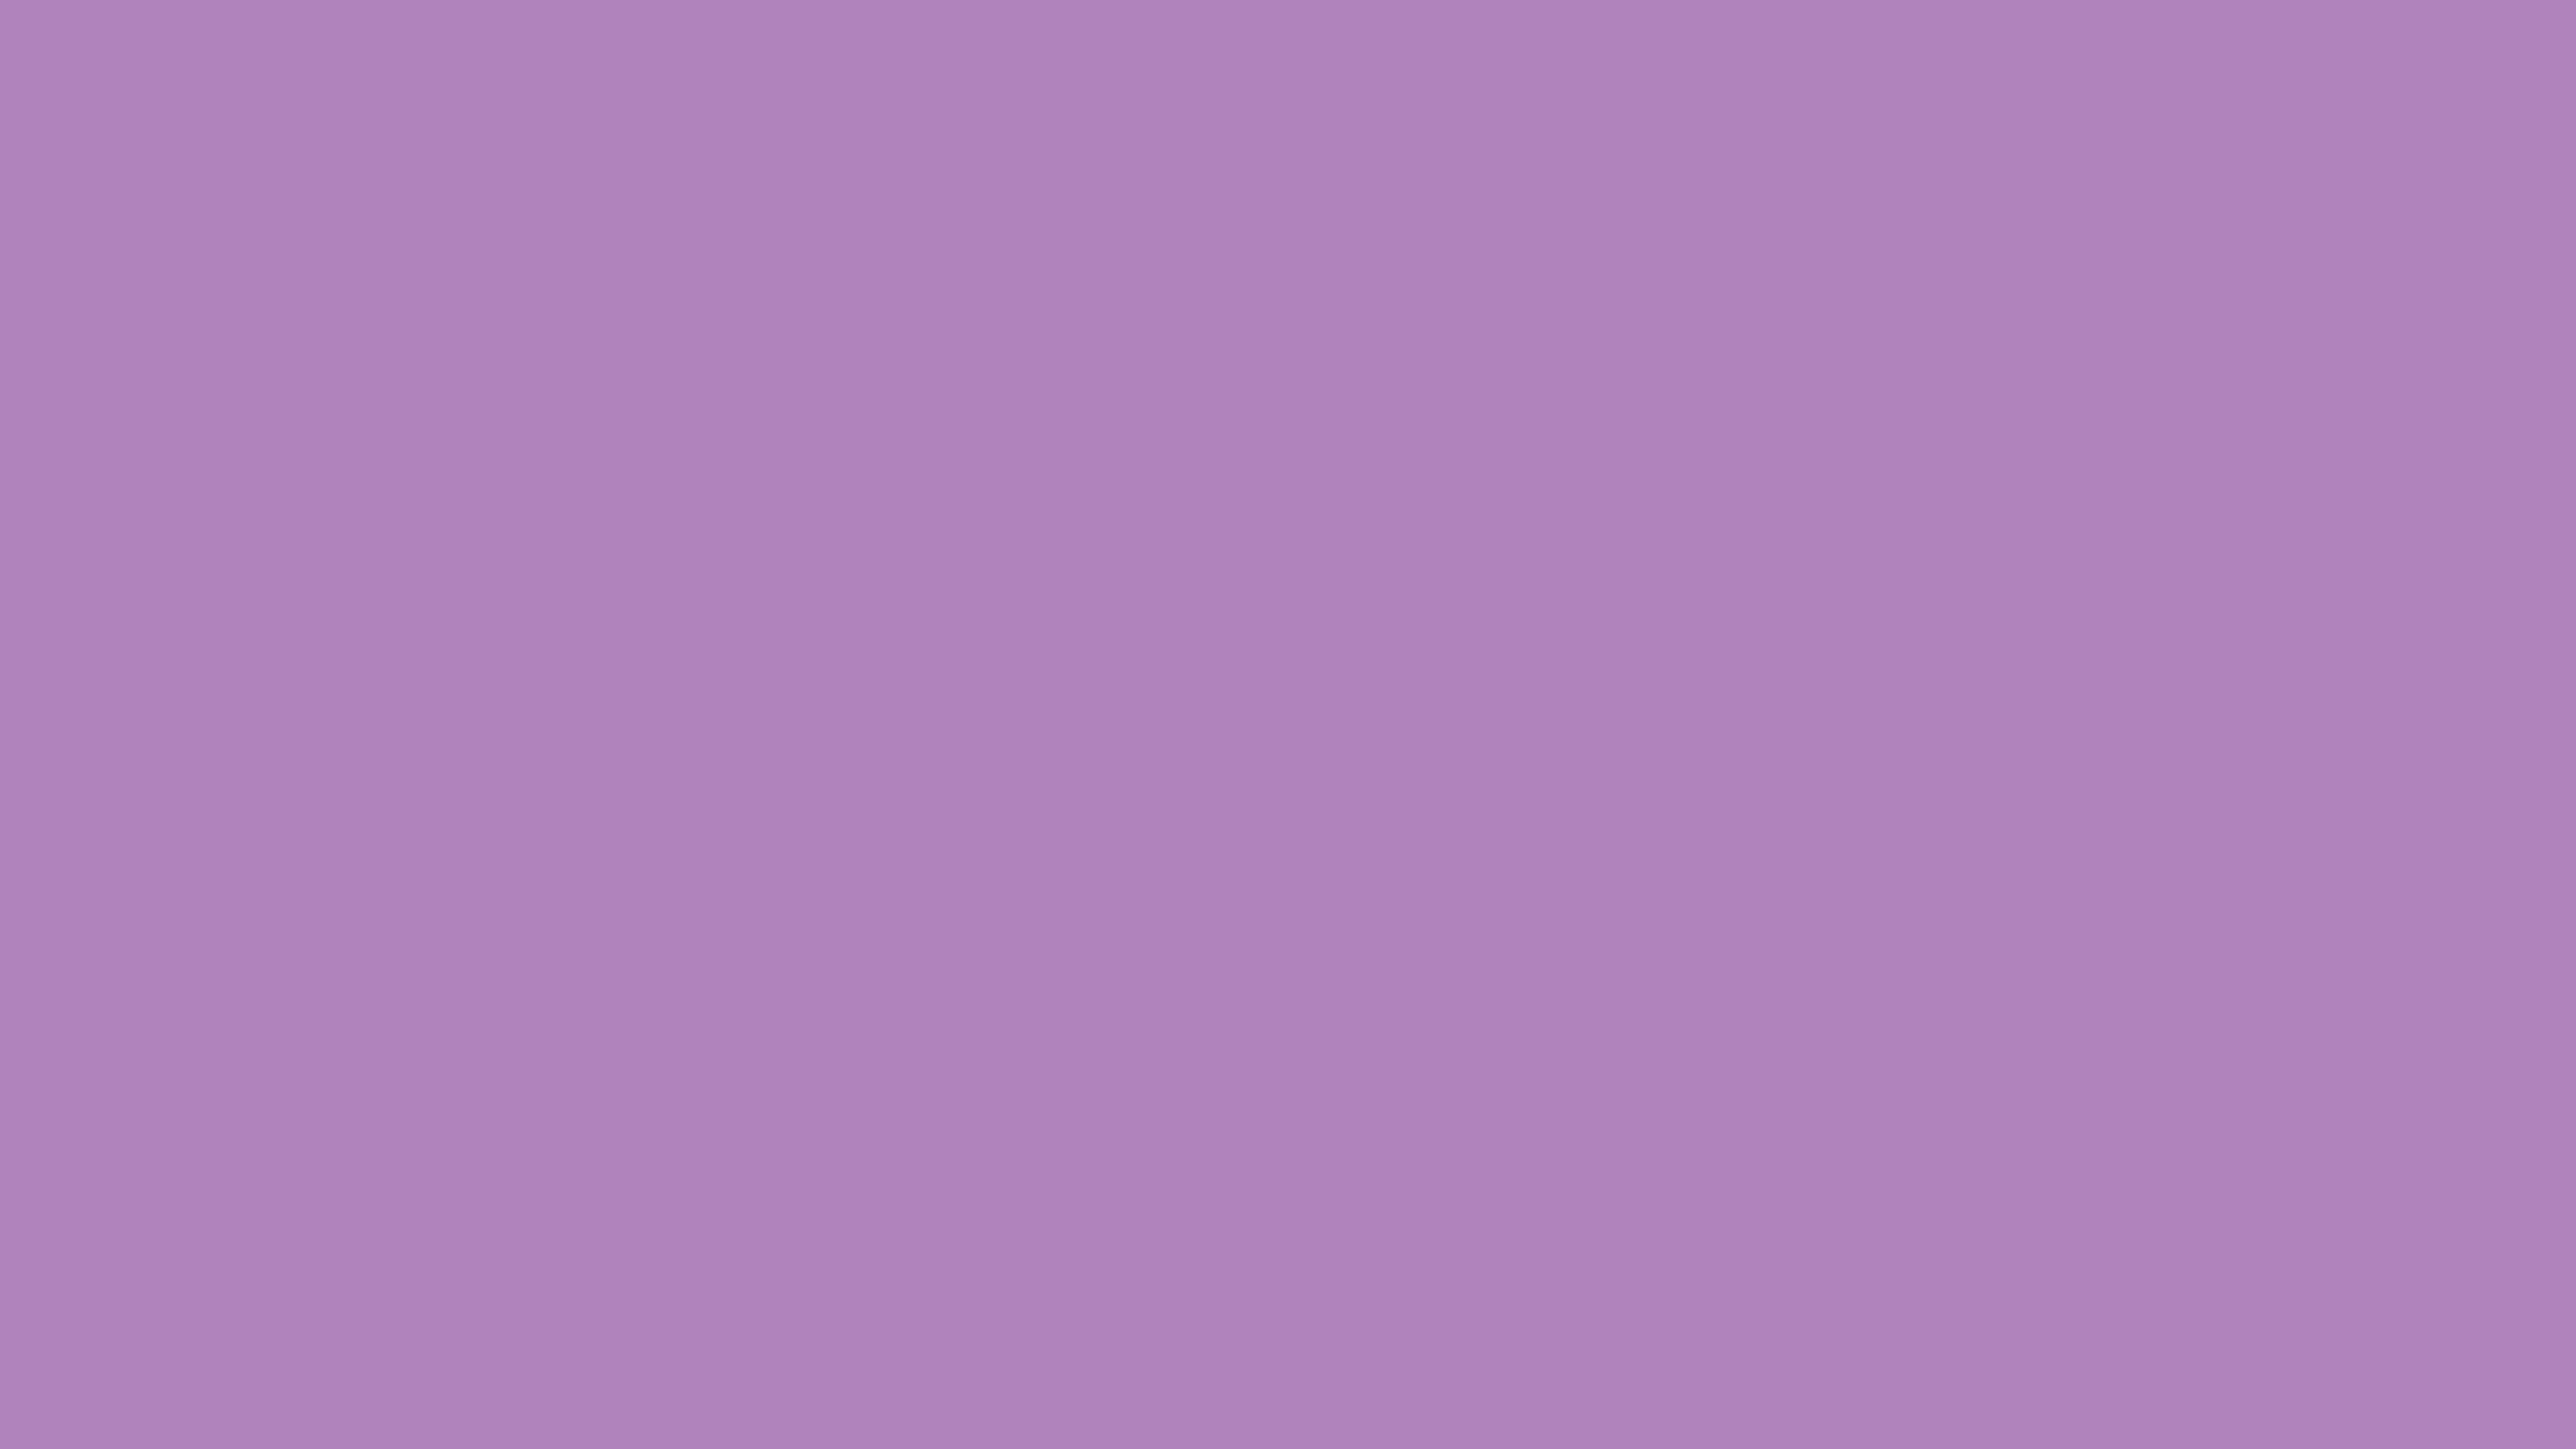 7680x4320 African Violet Solid Color Background